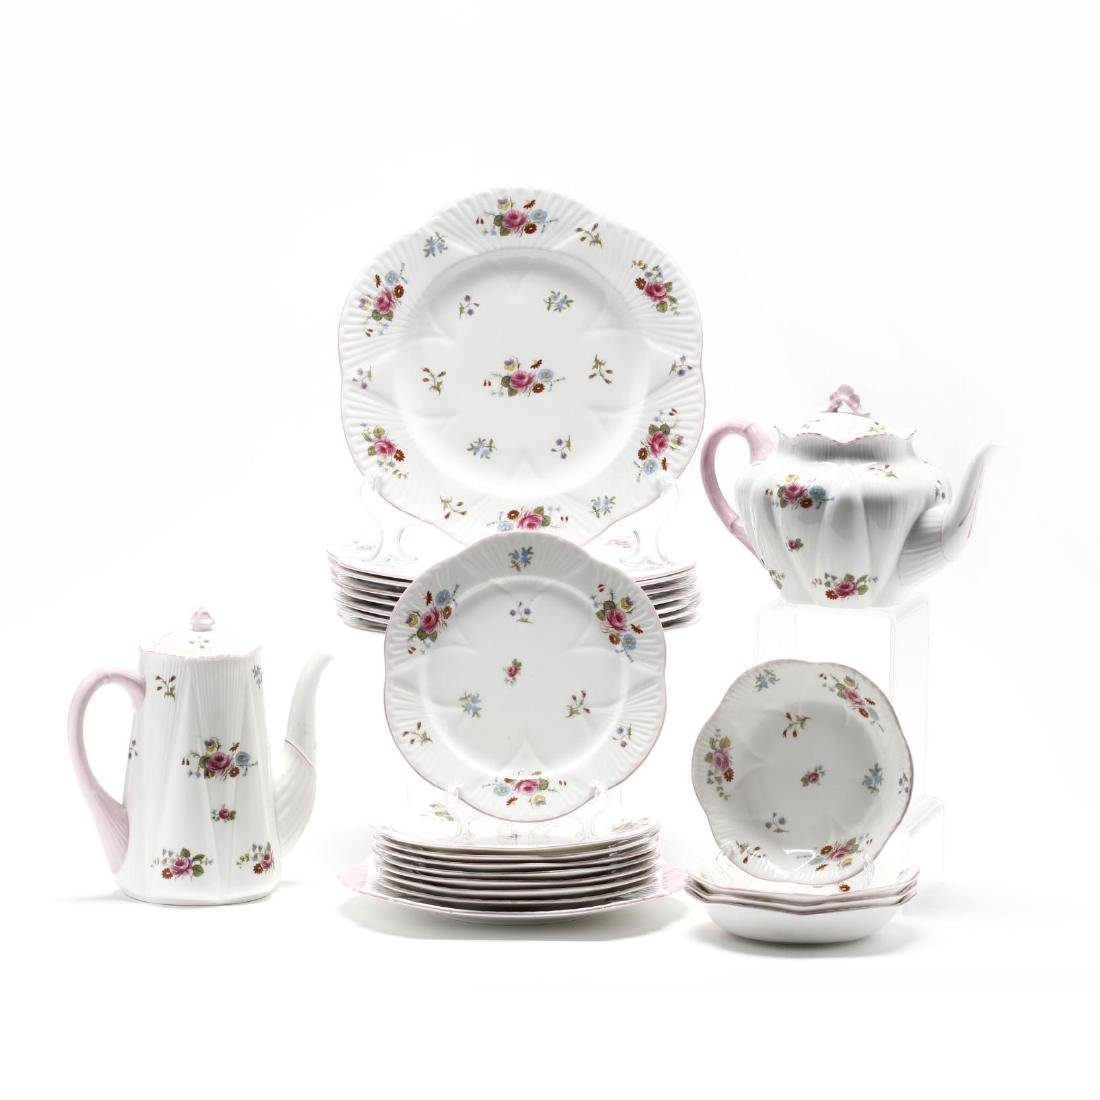 A Partial Set of Shelley China